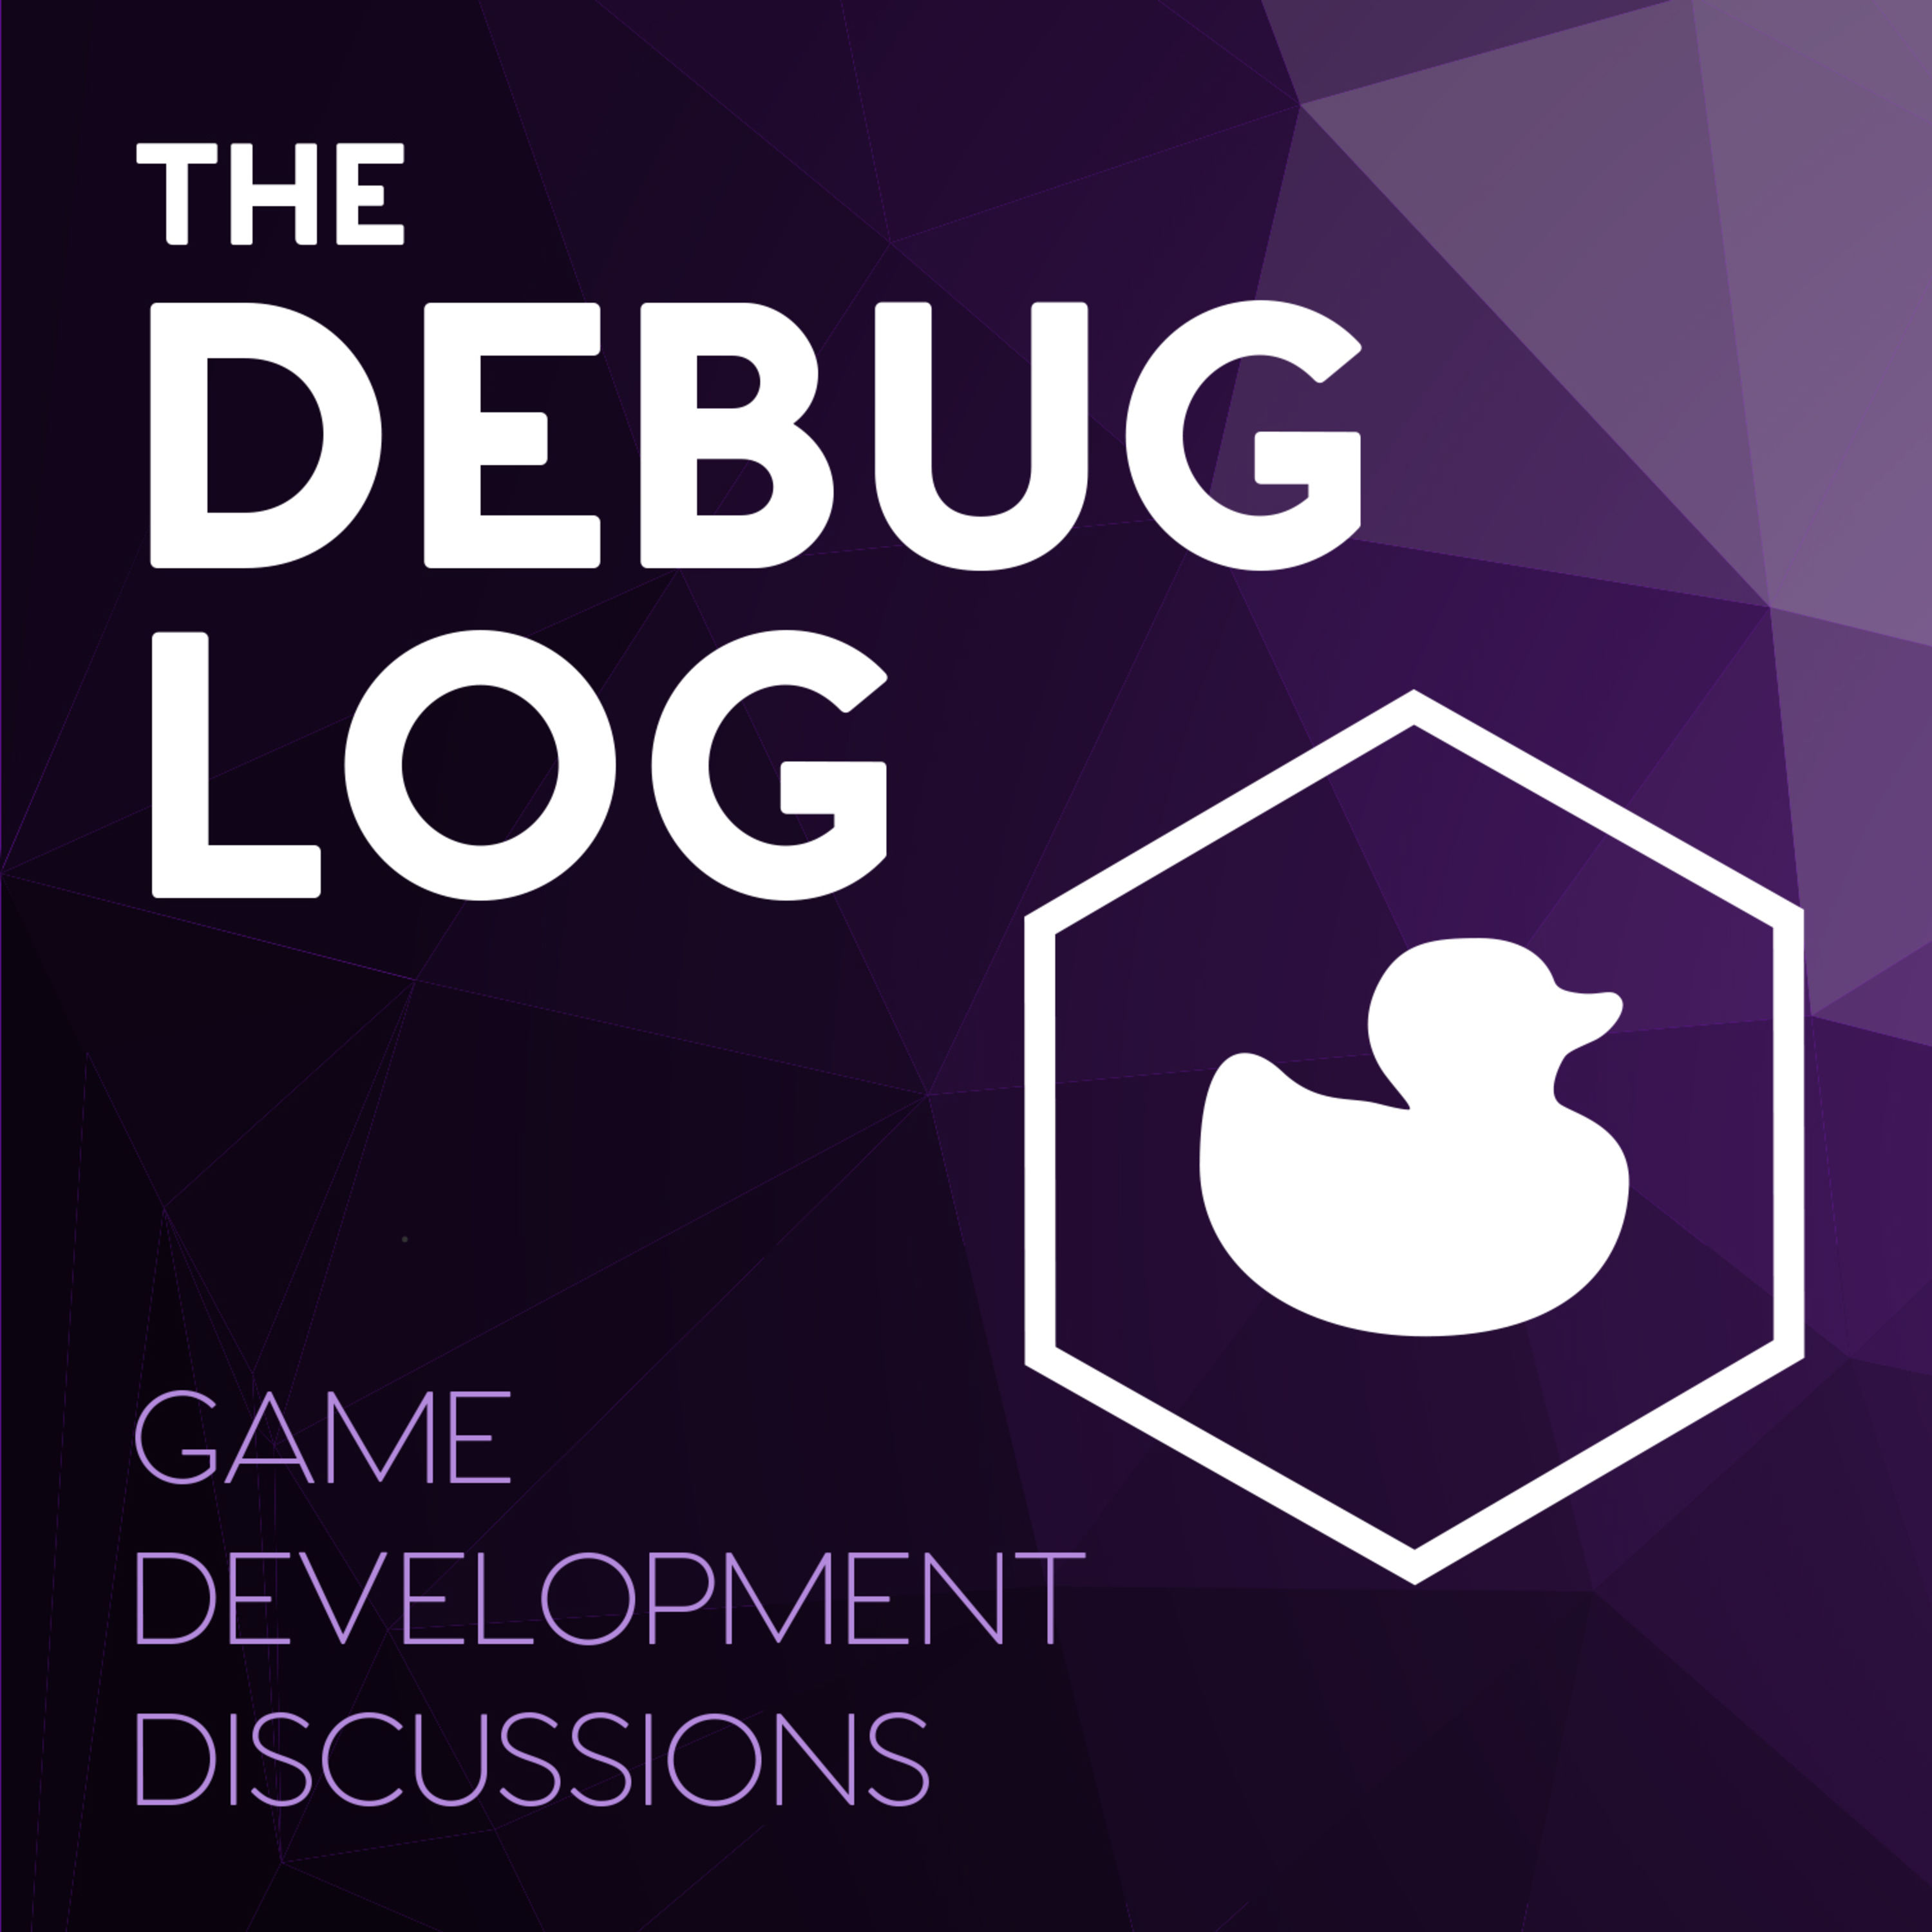 Welcome to The Debug Log, a podcast about game development.